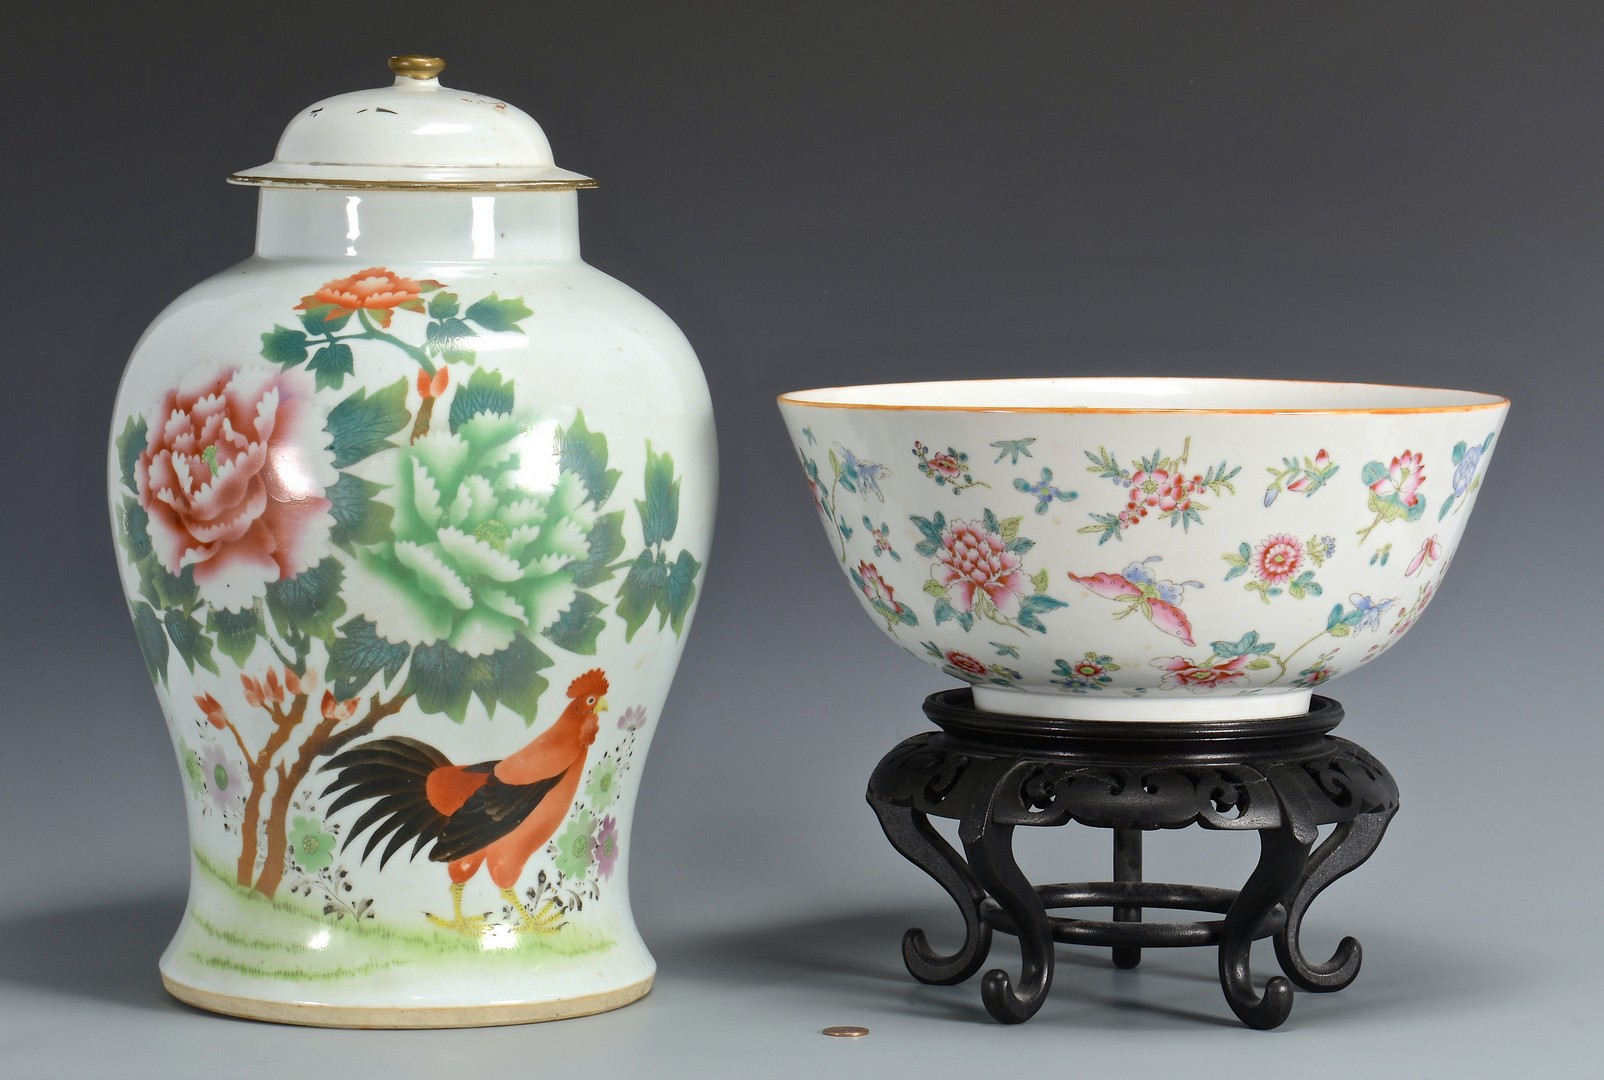 Lot 3832420: Chinese Ginger Jar w/ Rooster & Famile Rose Bowl